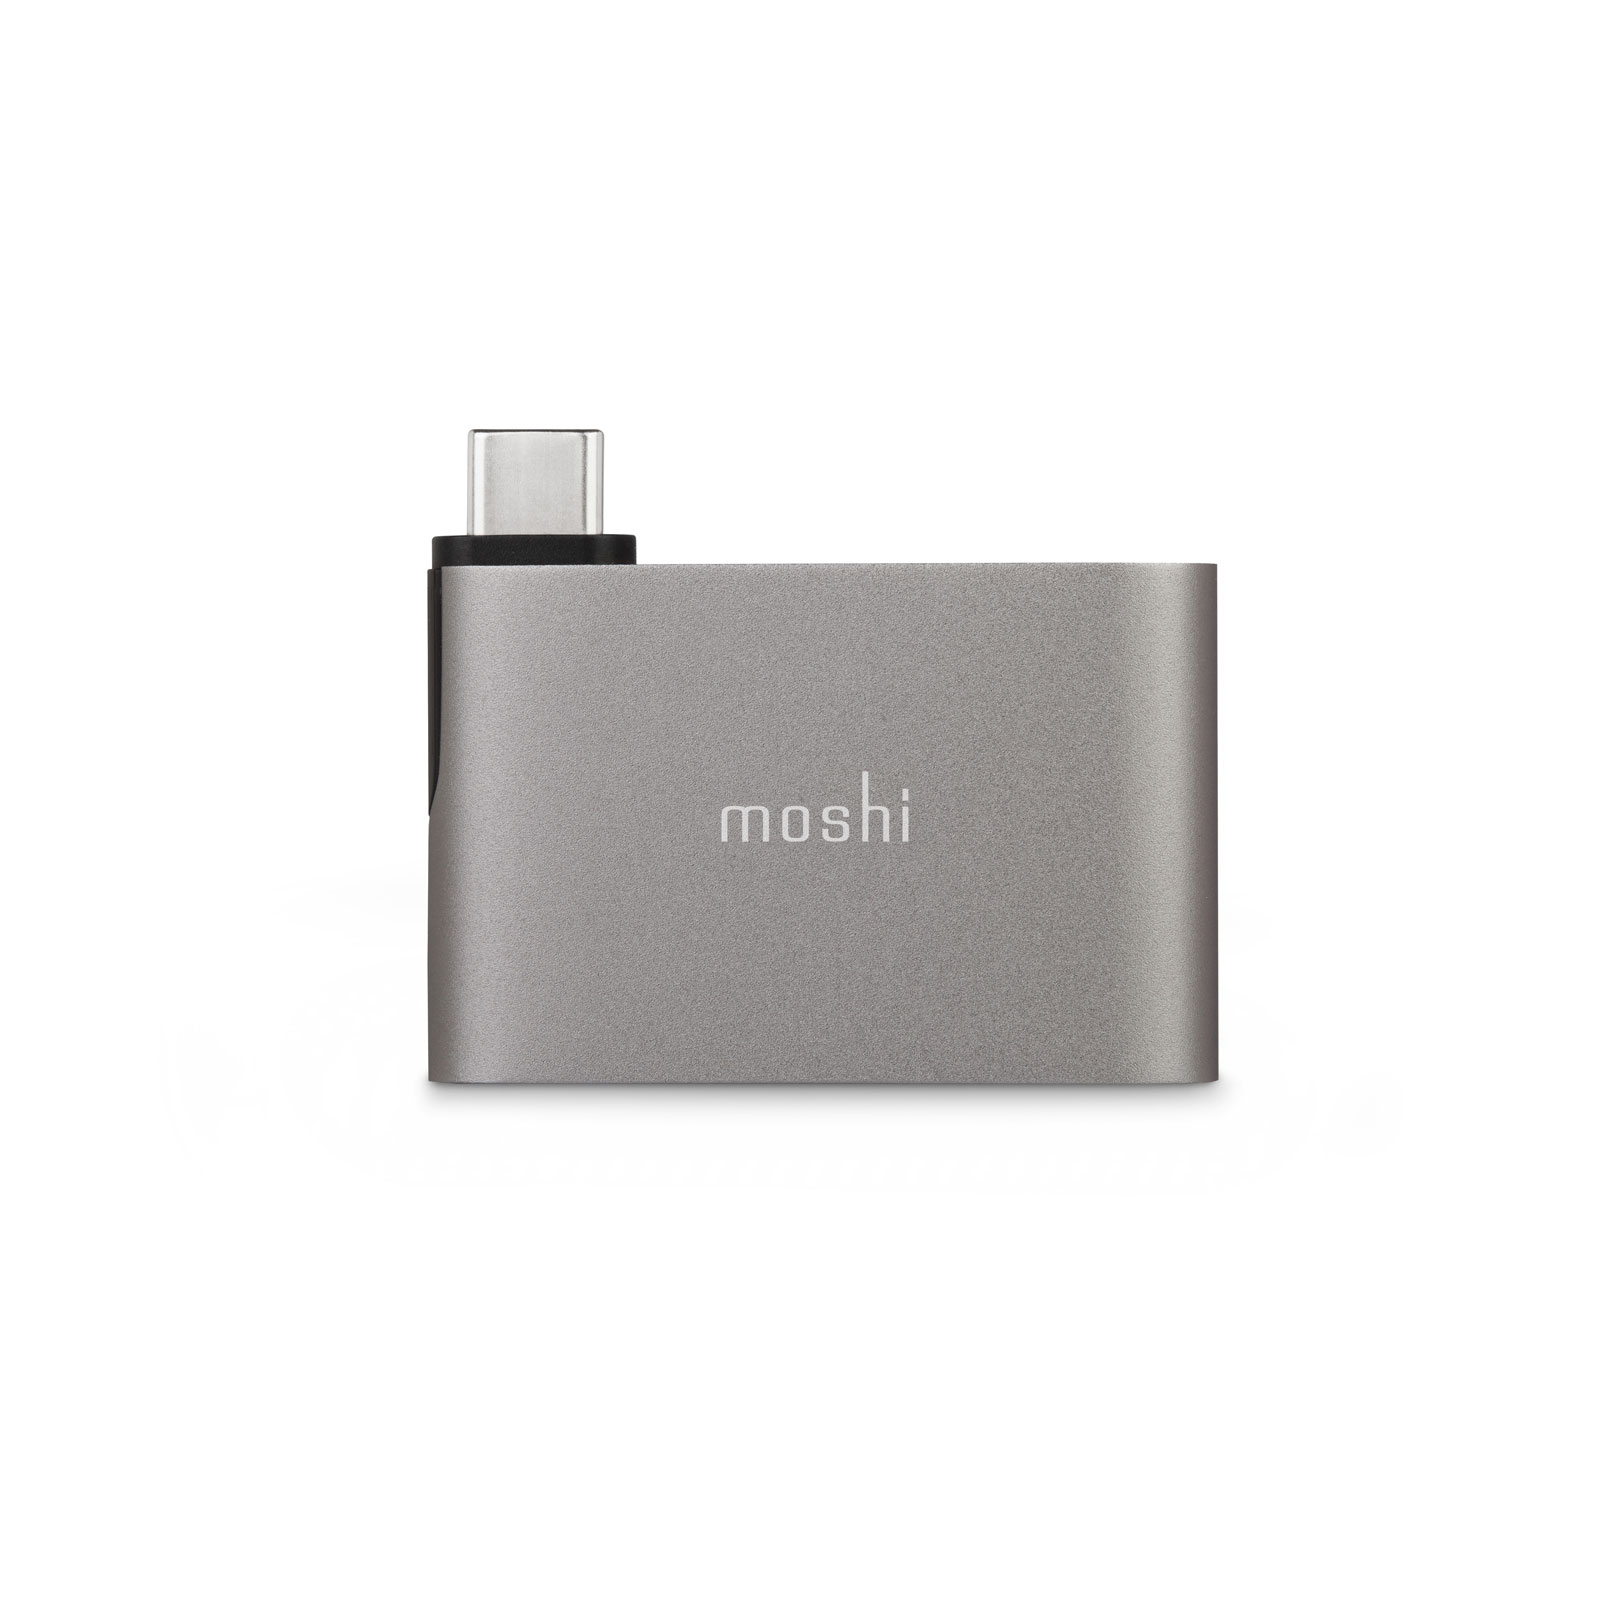 Moshi USB-C to Dual USB-A Adapter